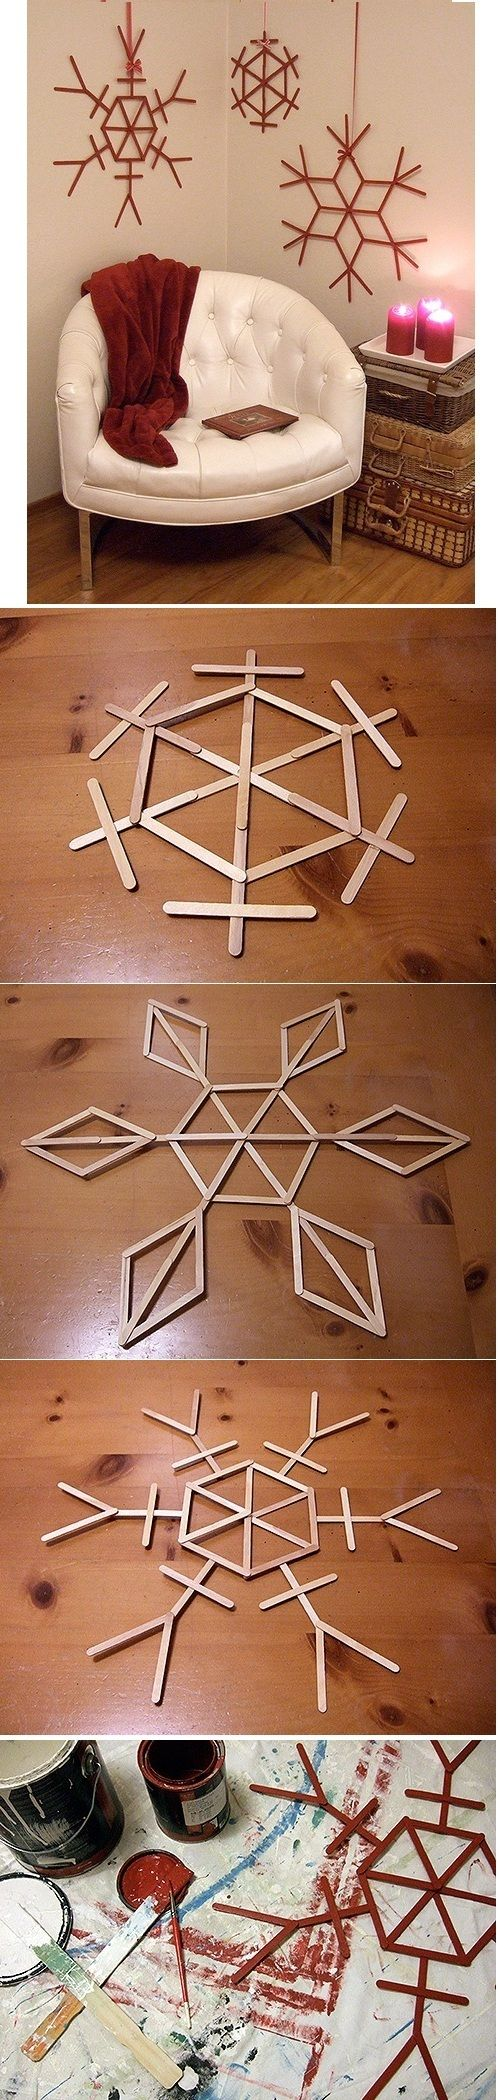 snowflakes made of popsicle sticks